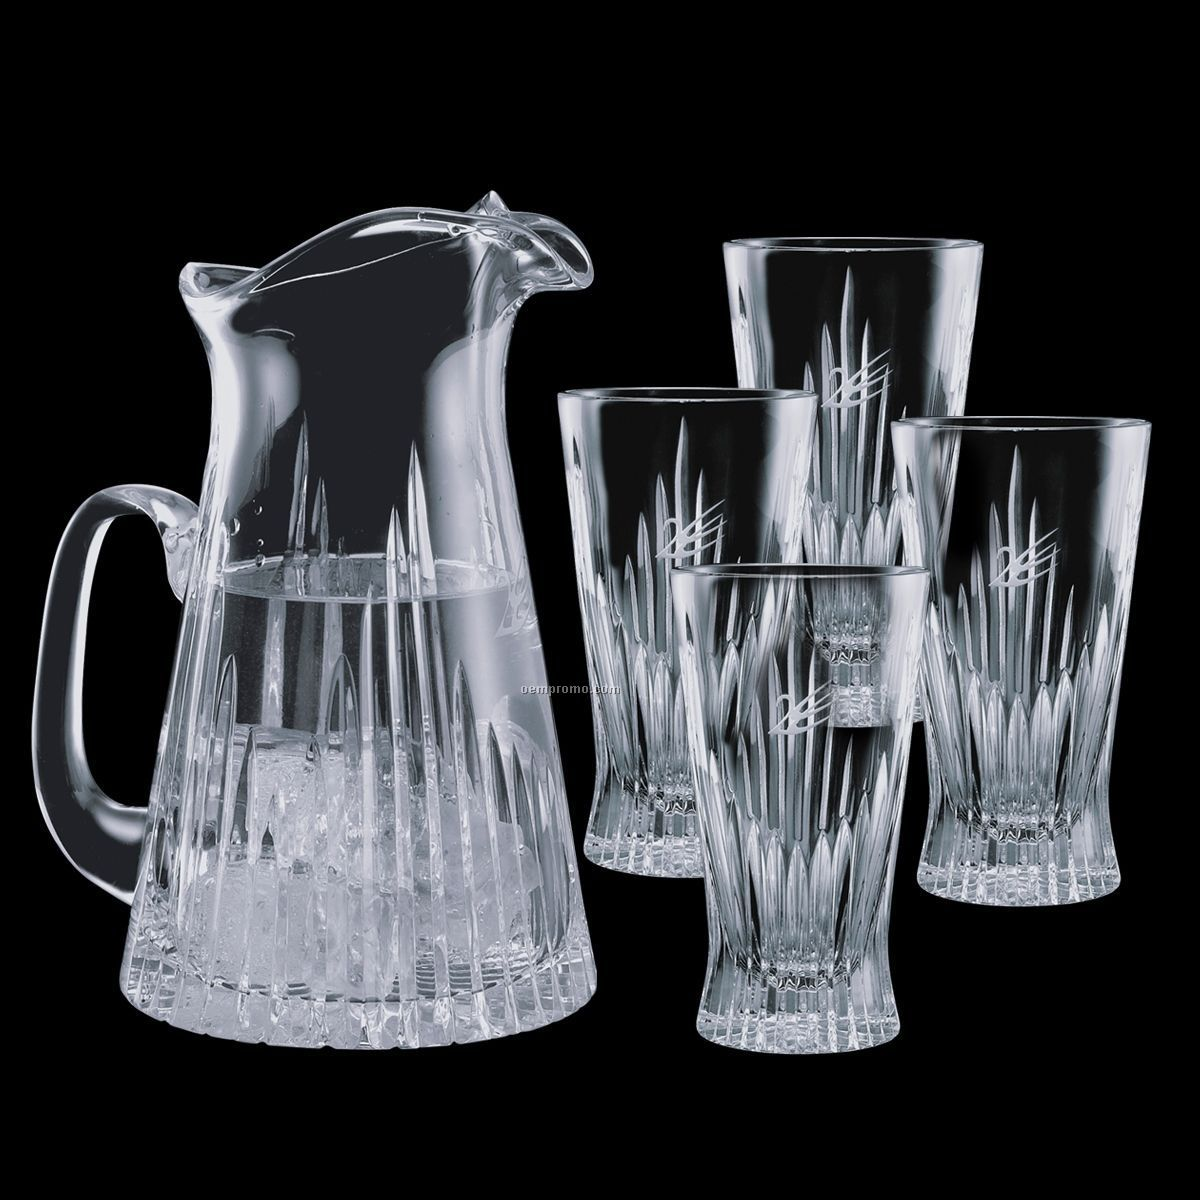 Cromwell Crystal Pitcher And 4 Cooler Glasses